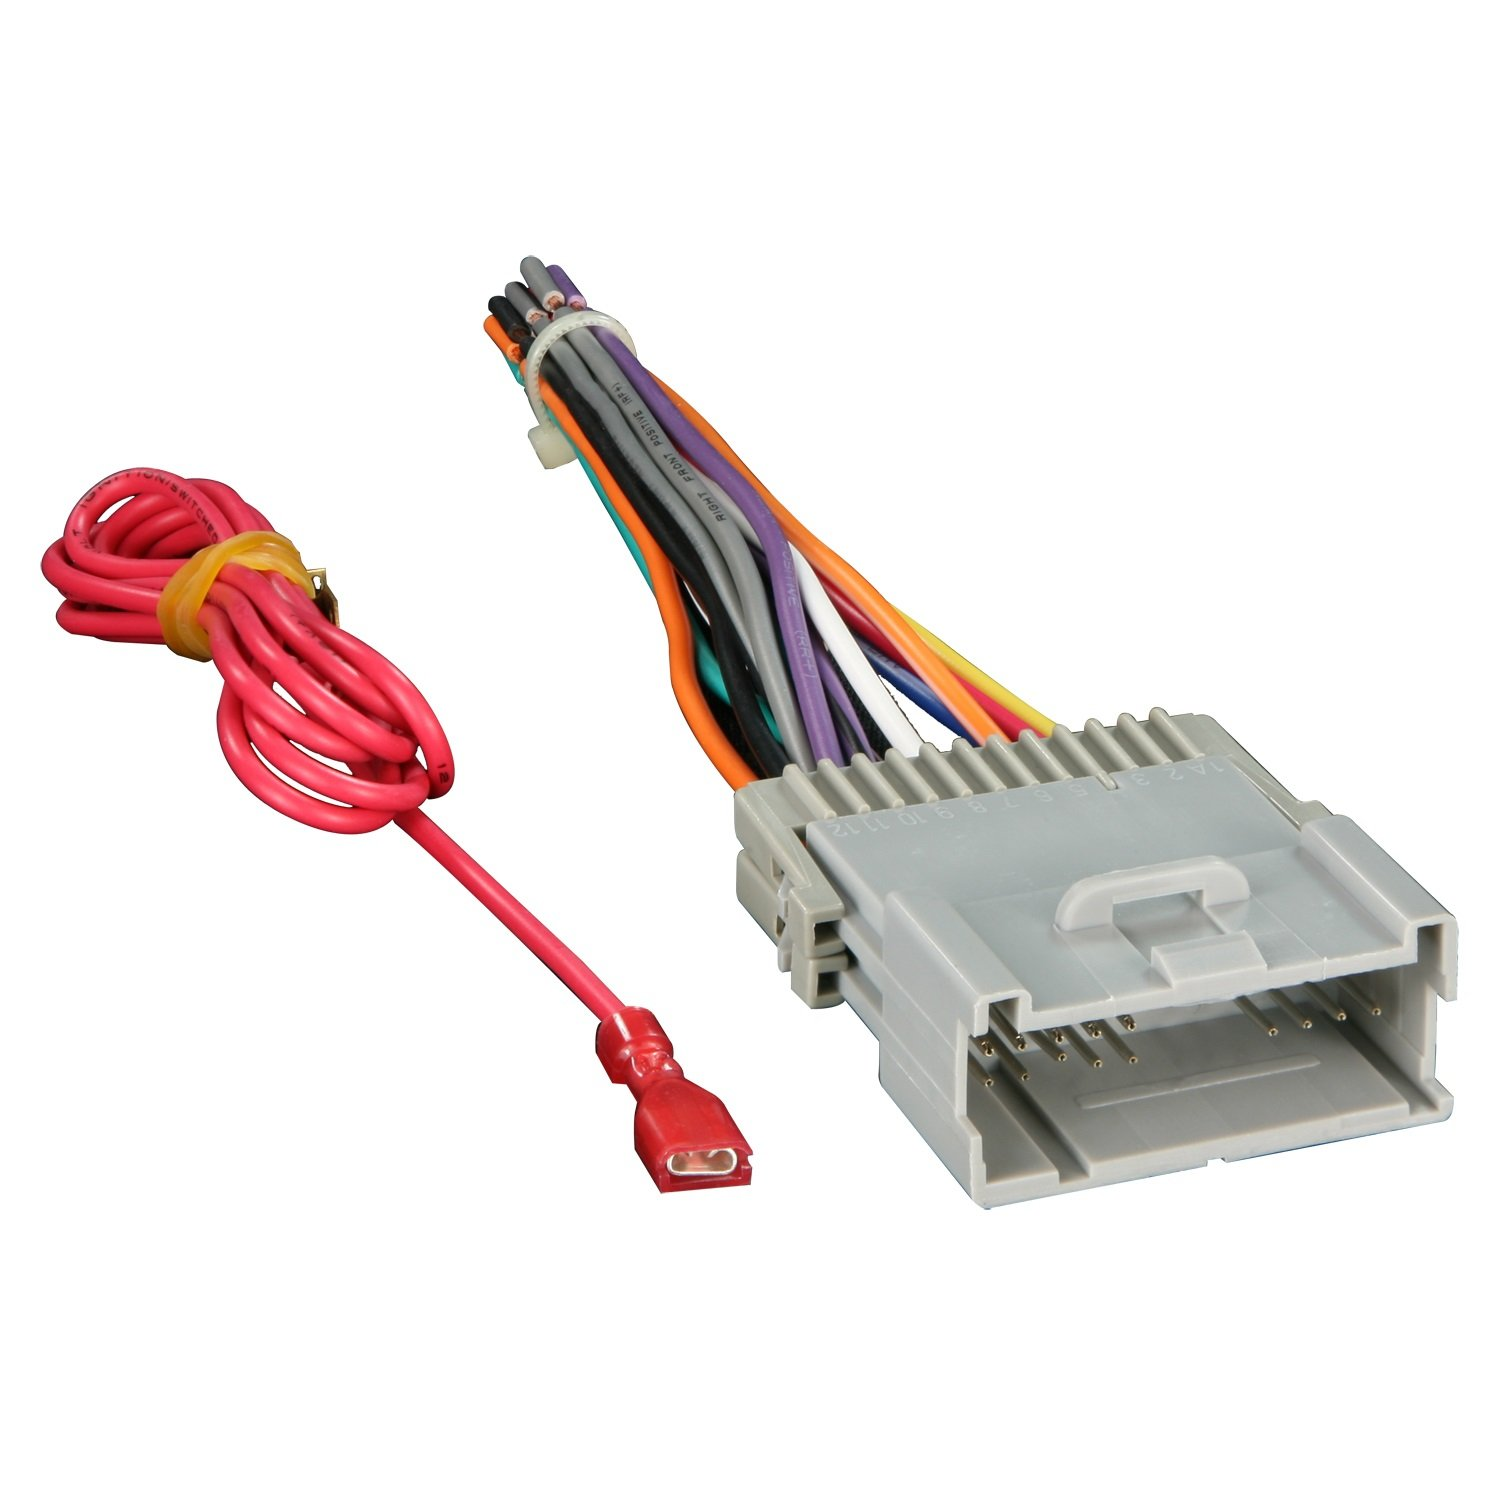 61eewxp9orL._SL1500_ amazon com metra 70 2003 radio wiring harness for gm 98 08 gm factory radio wiring harness at edmiracle.co